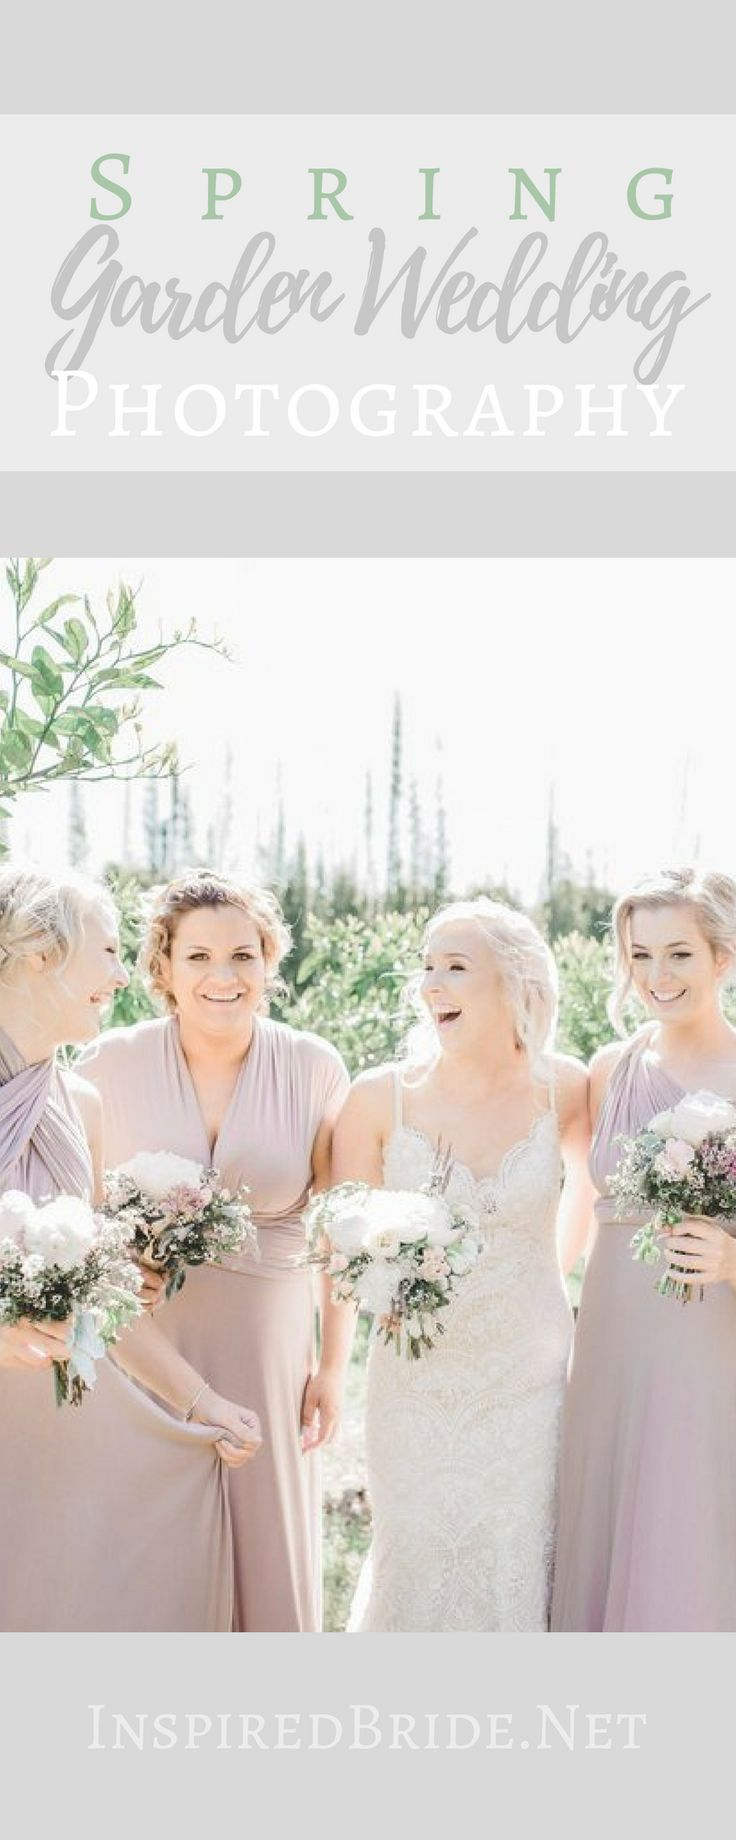 Vows In The Garden | Simple weddings, Weddings and Nontraditional ...